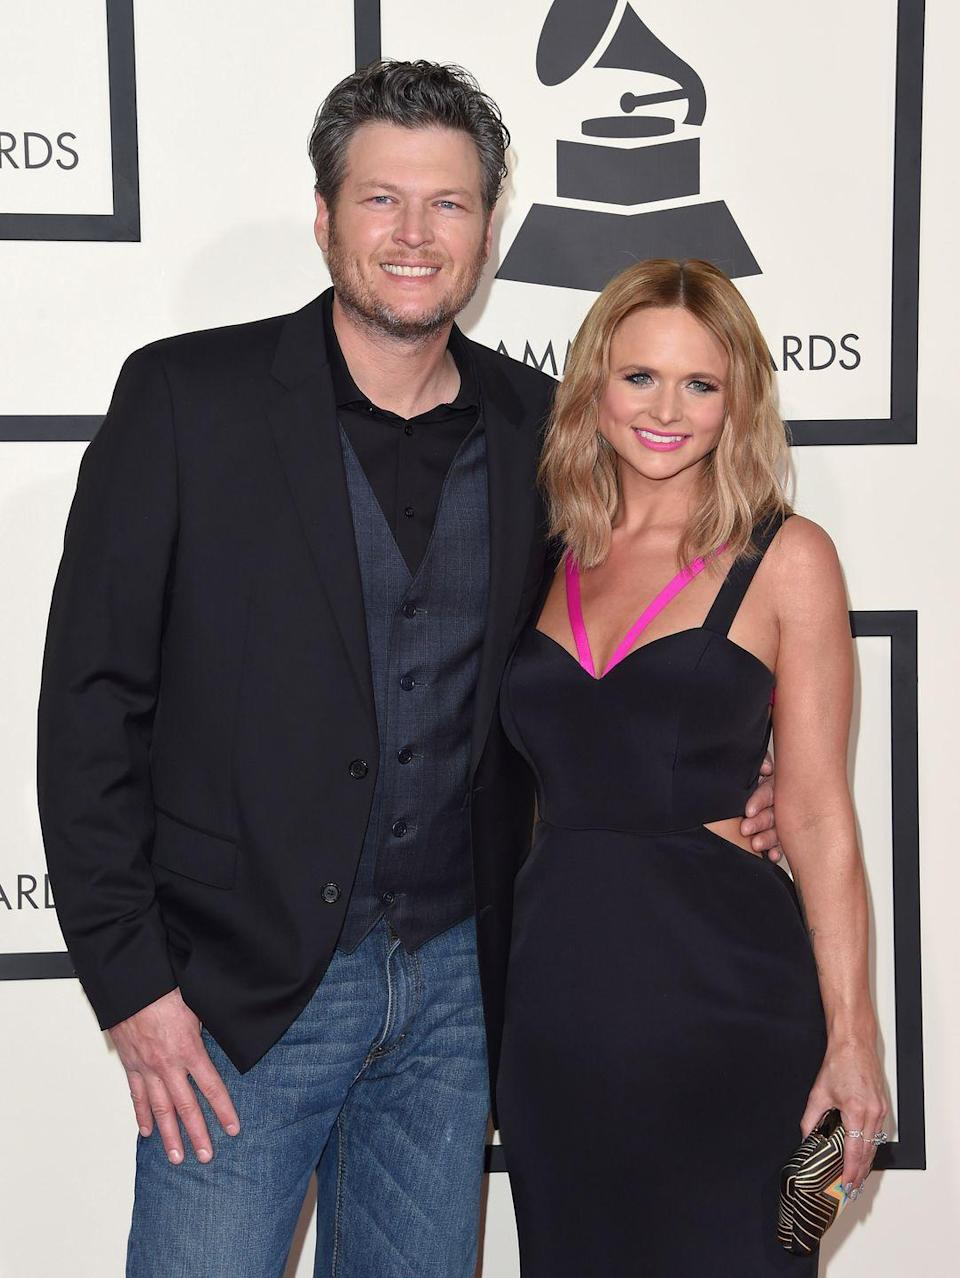 """<p>If you're a country music fan, you already know that Lambert and Shelton were the """"it"""" couple. The pair were married for four years before they announced their divorce in 2015, <a href=""""https://www.eonline.com/news/930221/why-miranda-lambert-and-blake-shelton-s-great-love-affair-unraveled"""" rel=""""nofollow noopener"""" target=""""_blank"""" data-ylk=""""slk:blaming it on"""" class=""""link rapid-noclick-resp"""">blaming it on</a> too much time apart and hectic schedules. </p>"""